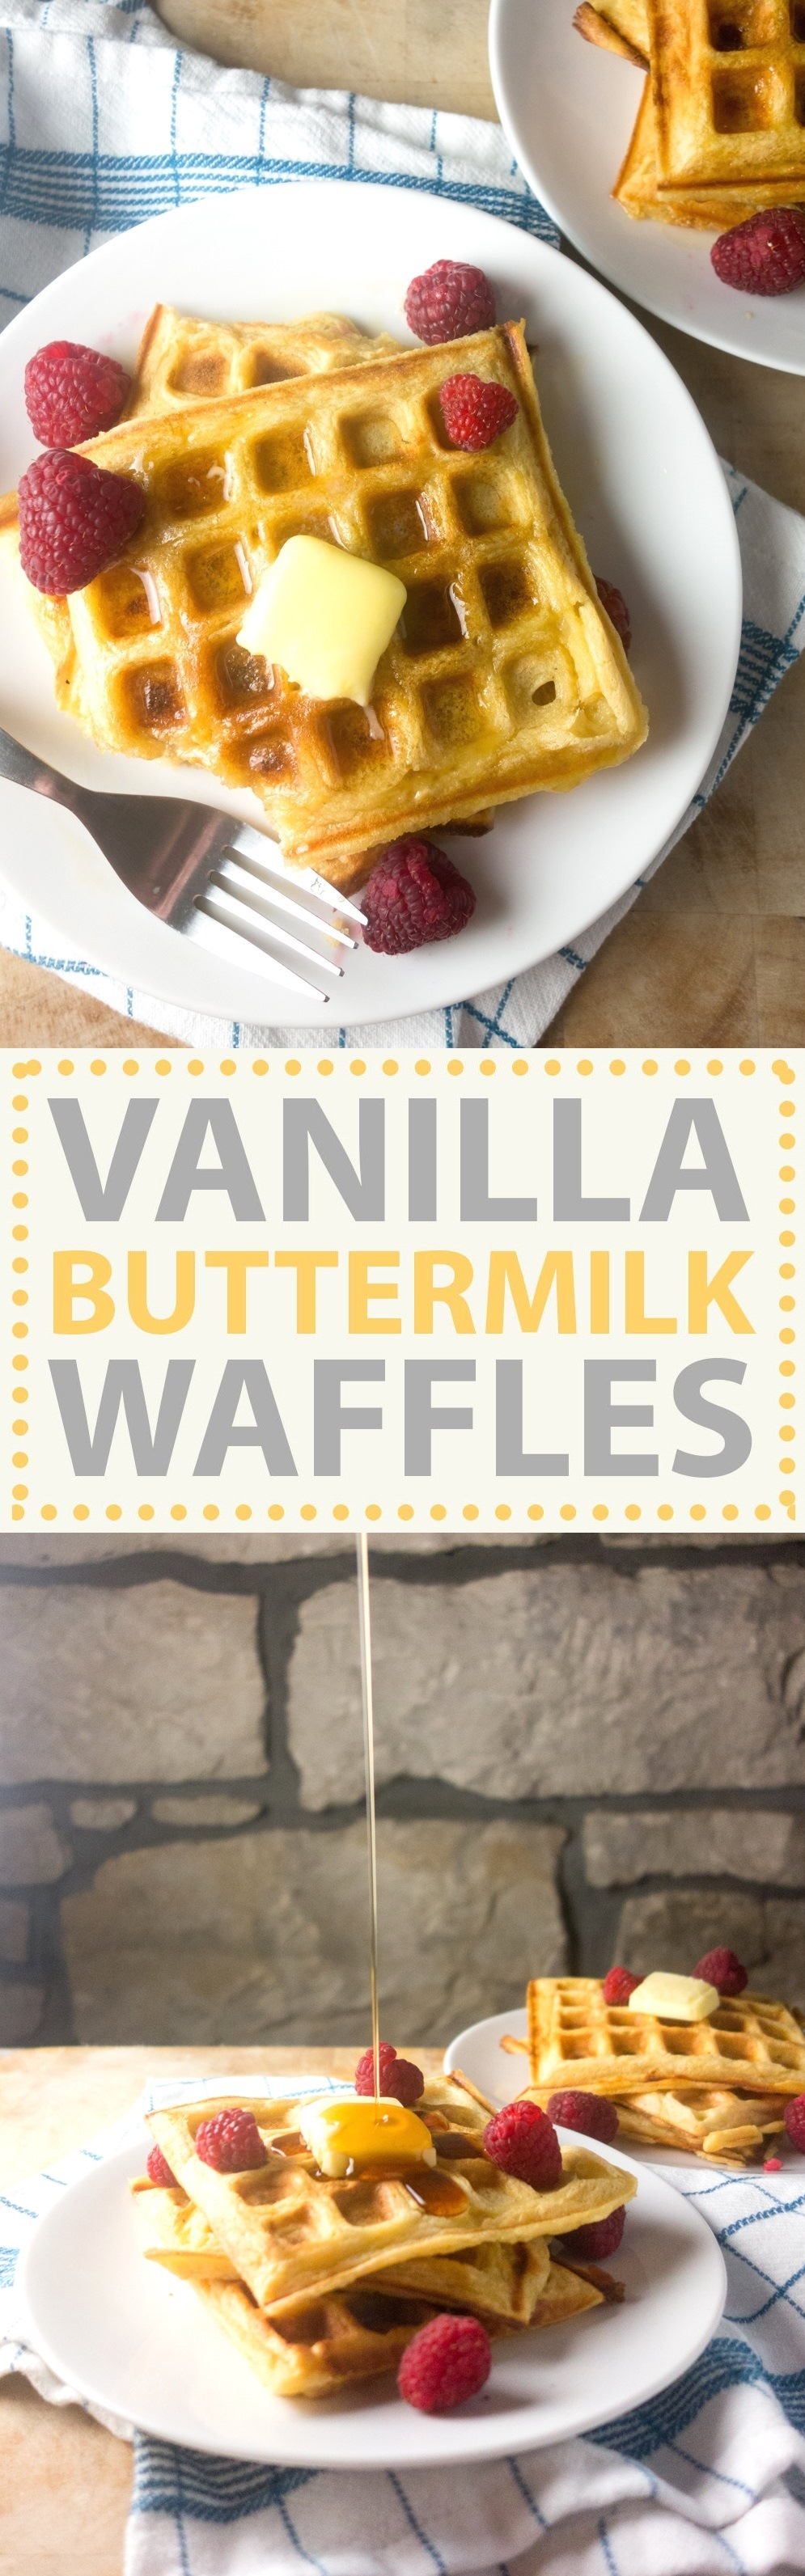 ... + ideas about Buttermilk Waffles on Pinterest | Waffles, Waffle